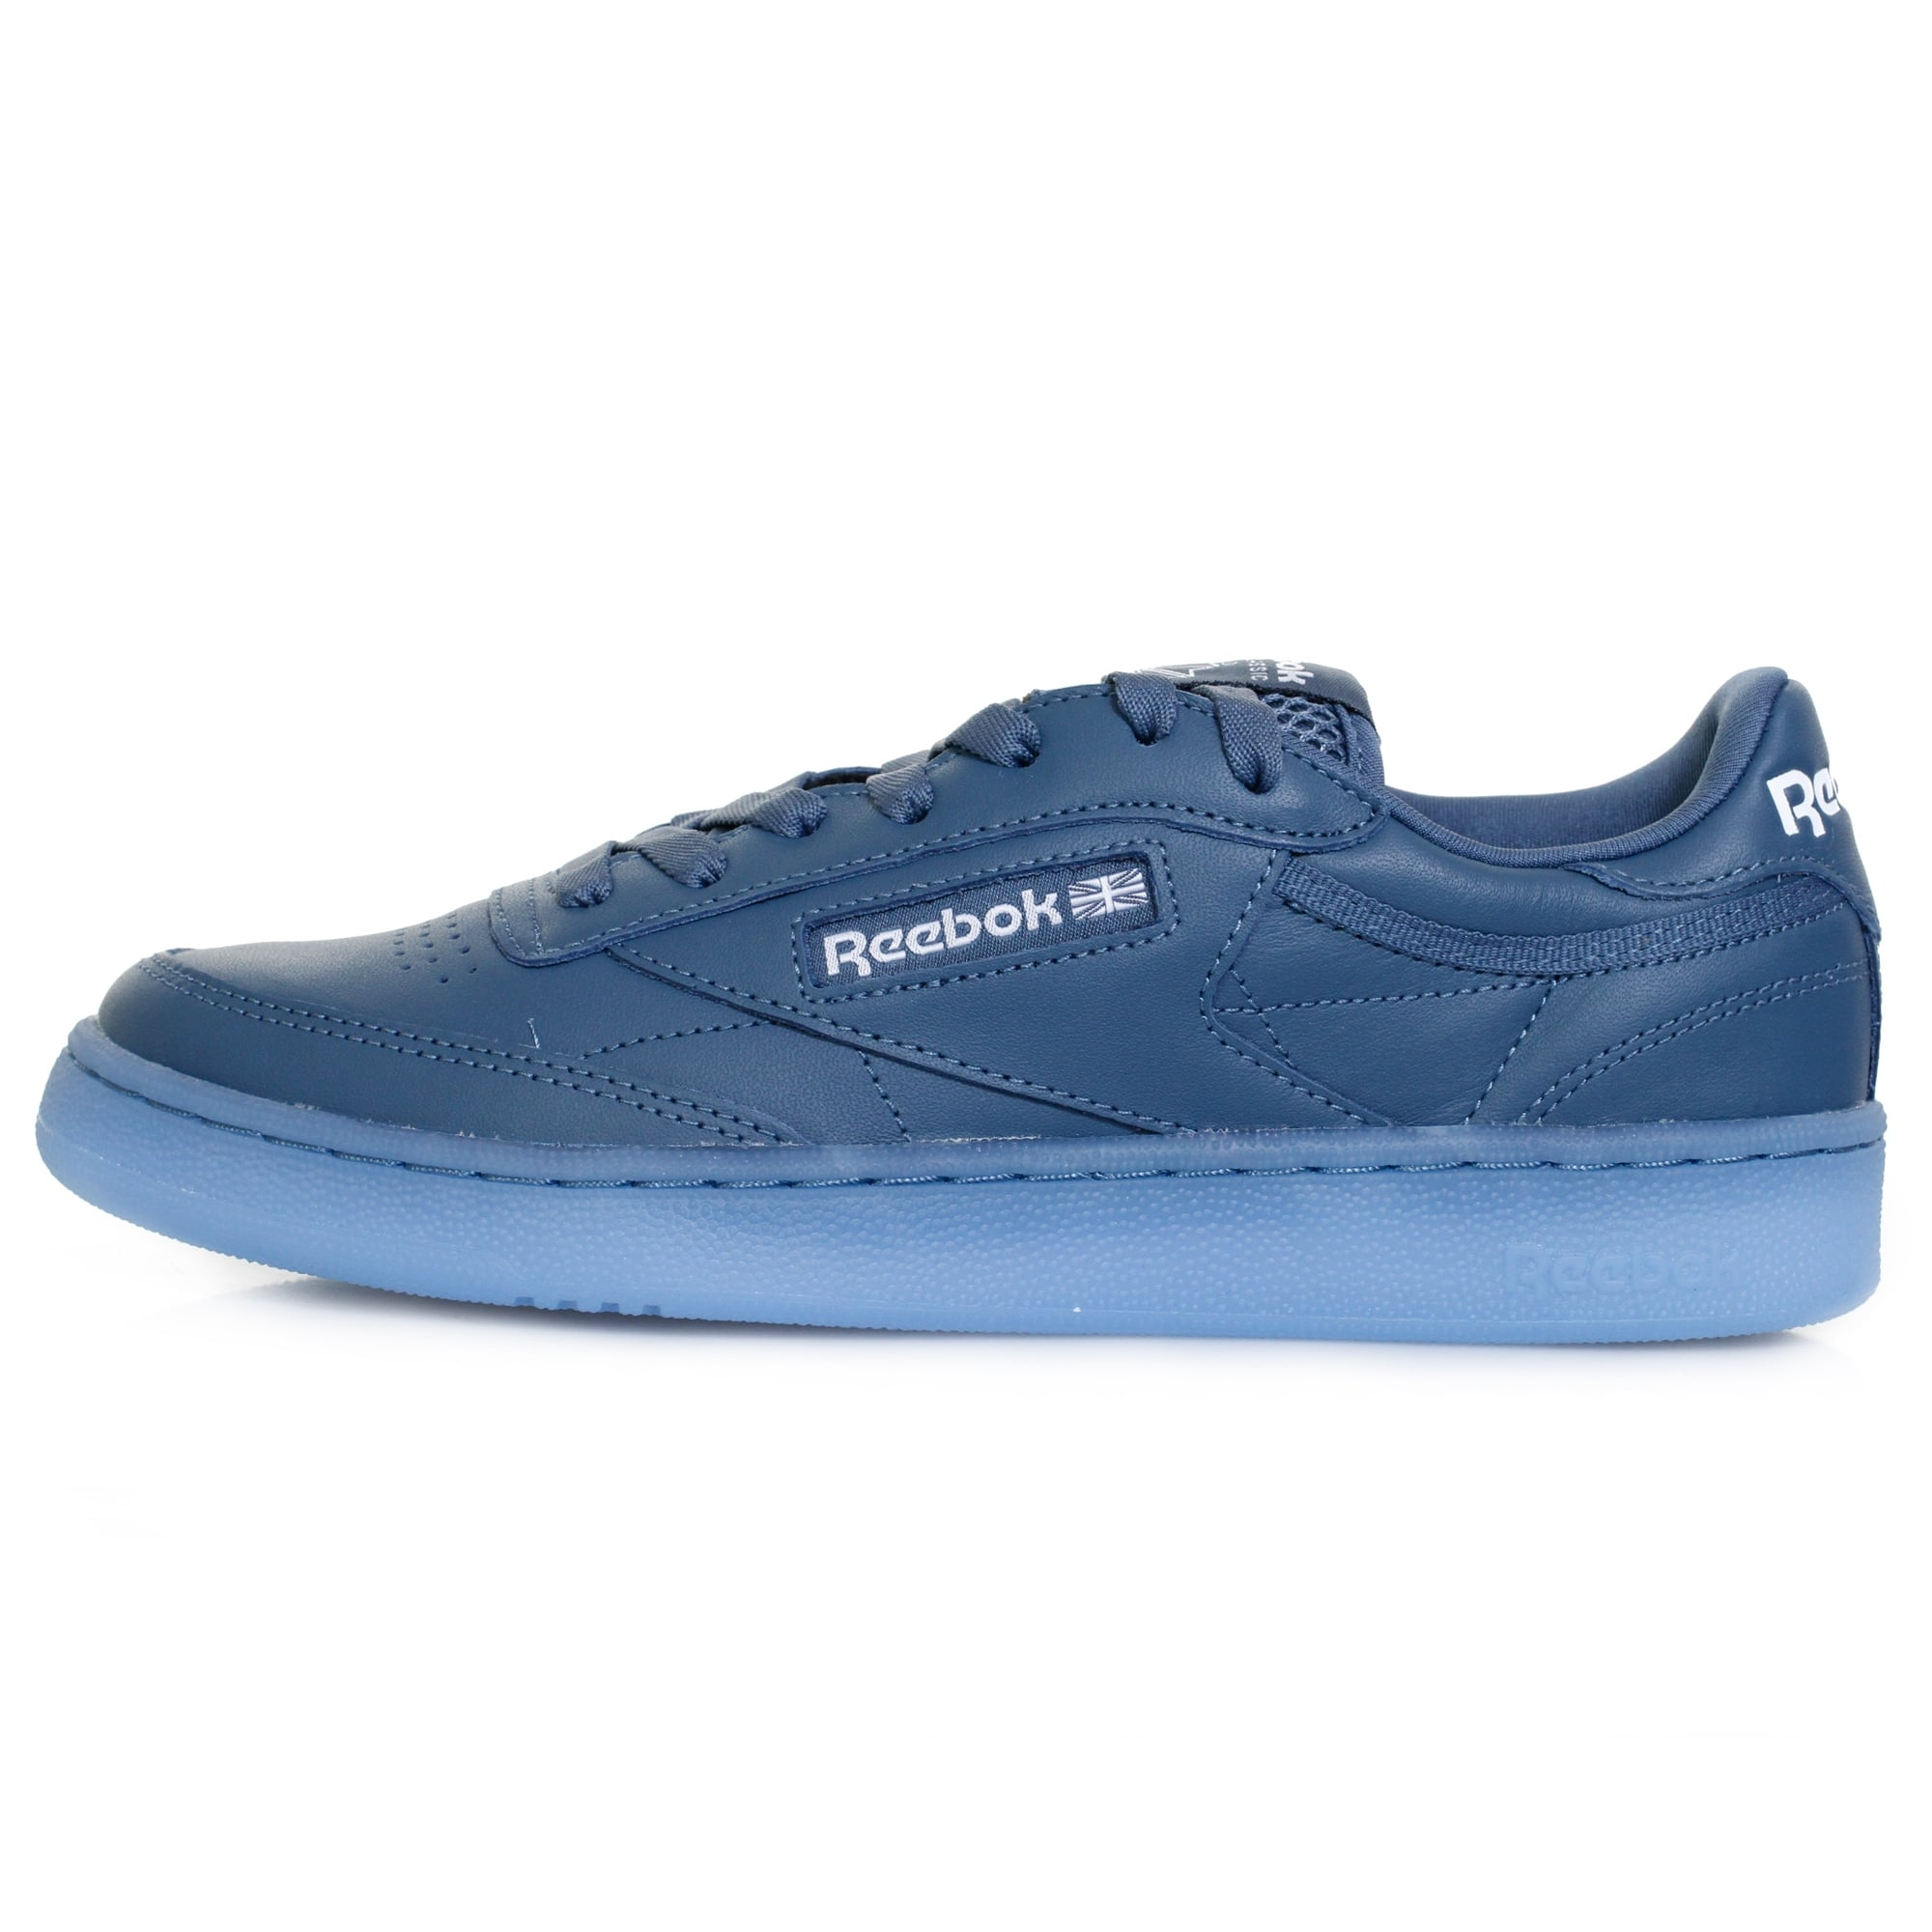 Reebok Club C85 Ice Blue Shoe BD1672 4fd553cdea8